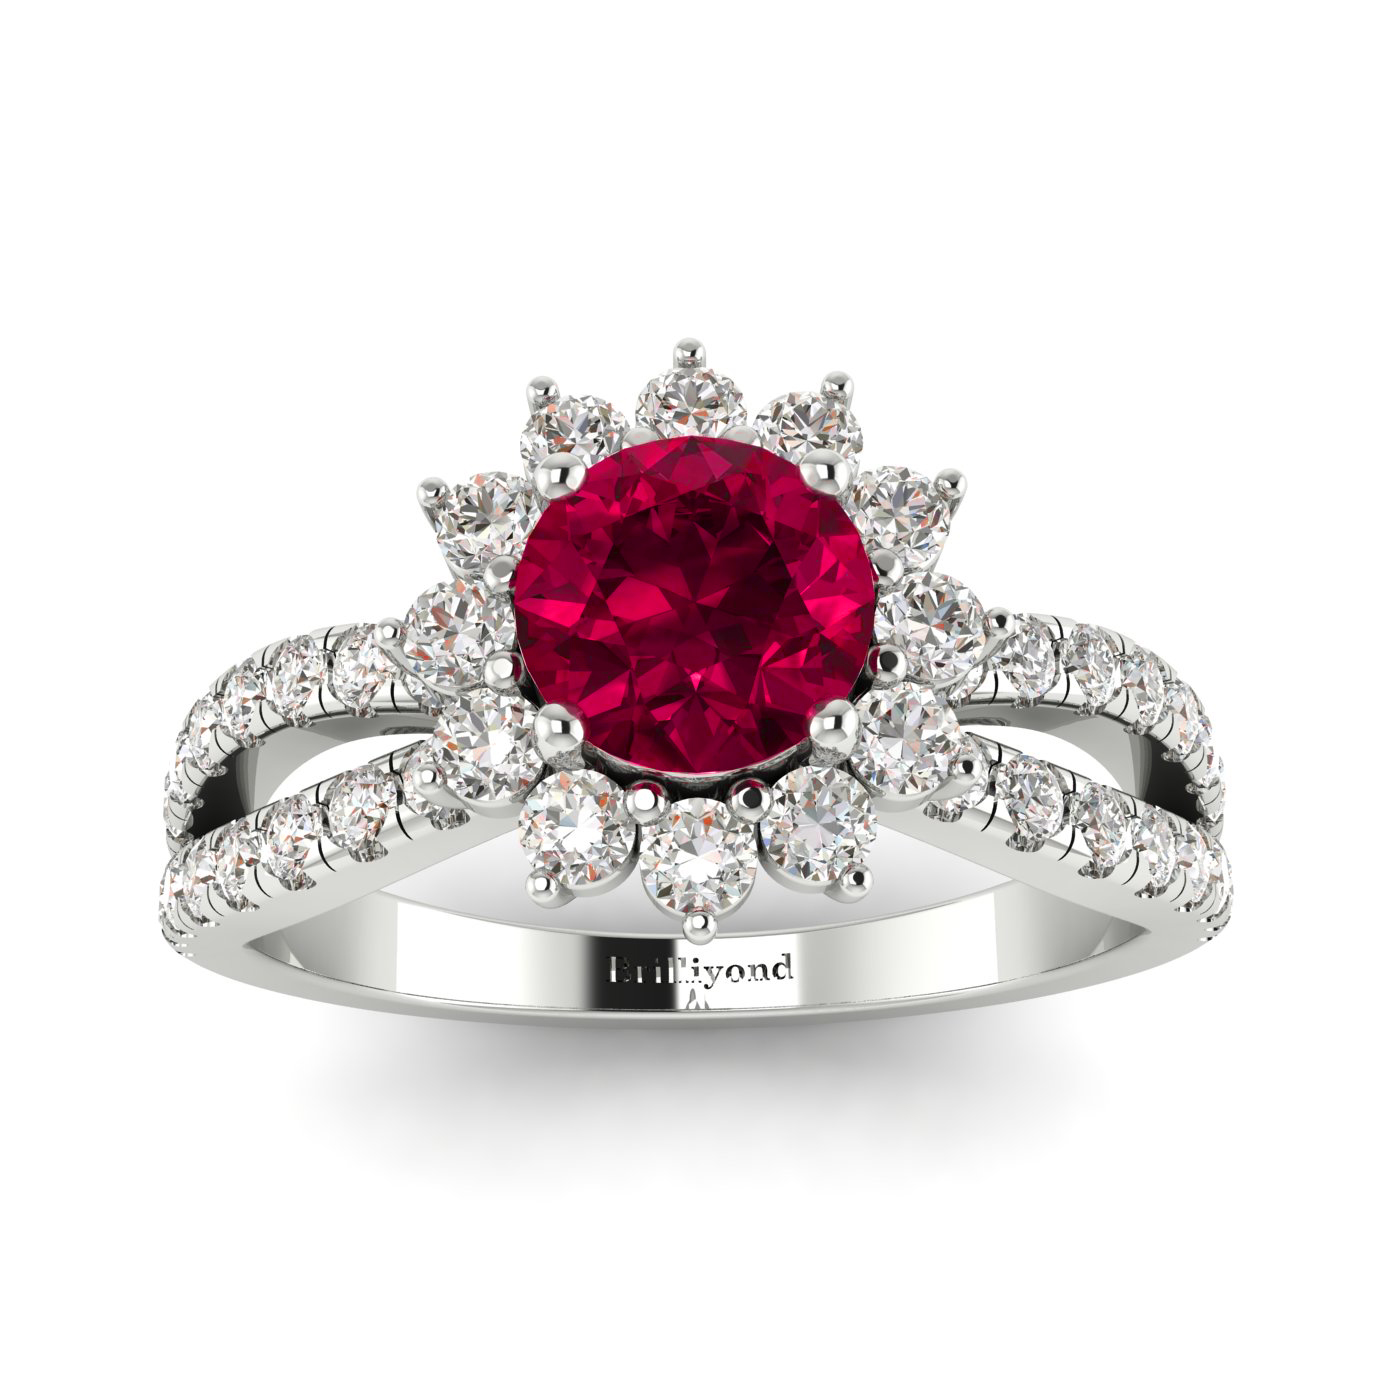 Floral inspired Ruby Ring with Diamond Accents